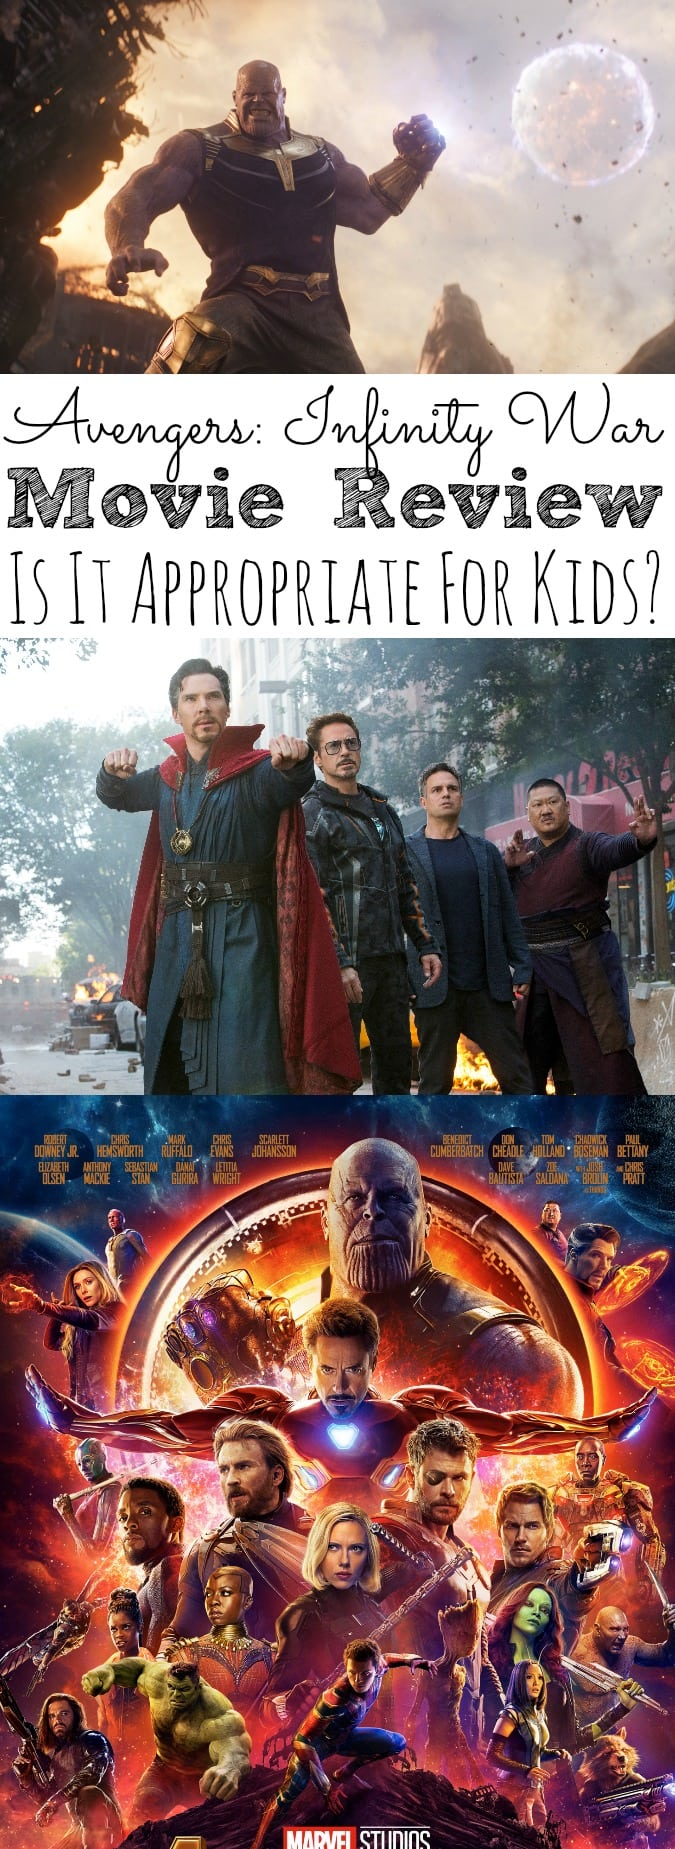 Avengers Infinity War Movie Review Is It Appropriate For Kids